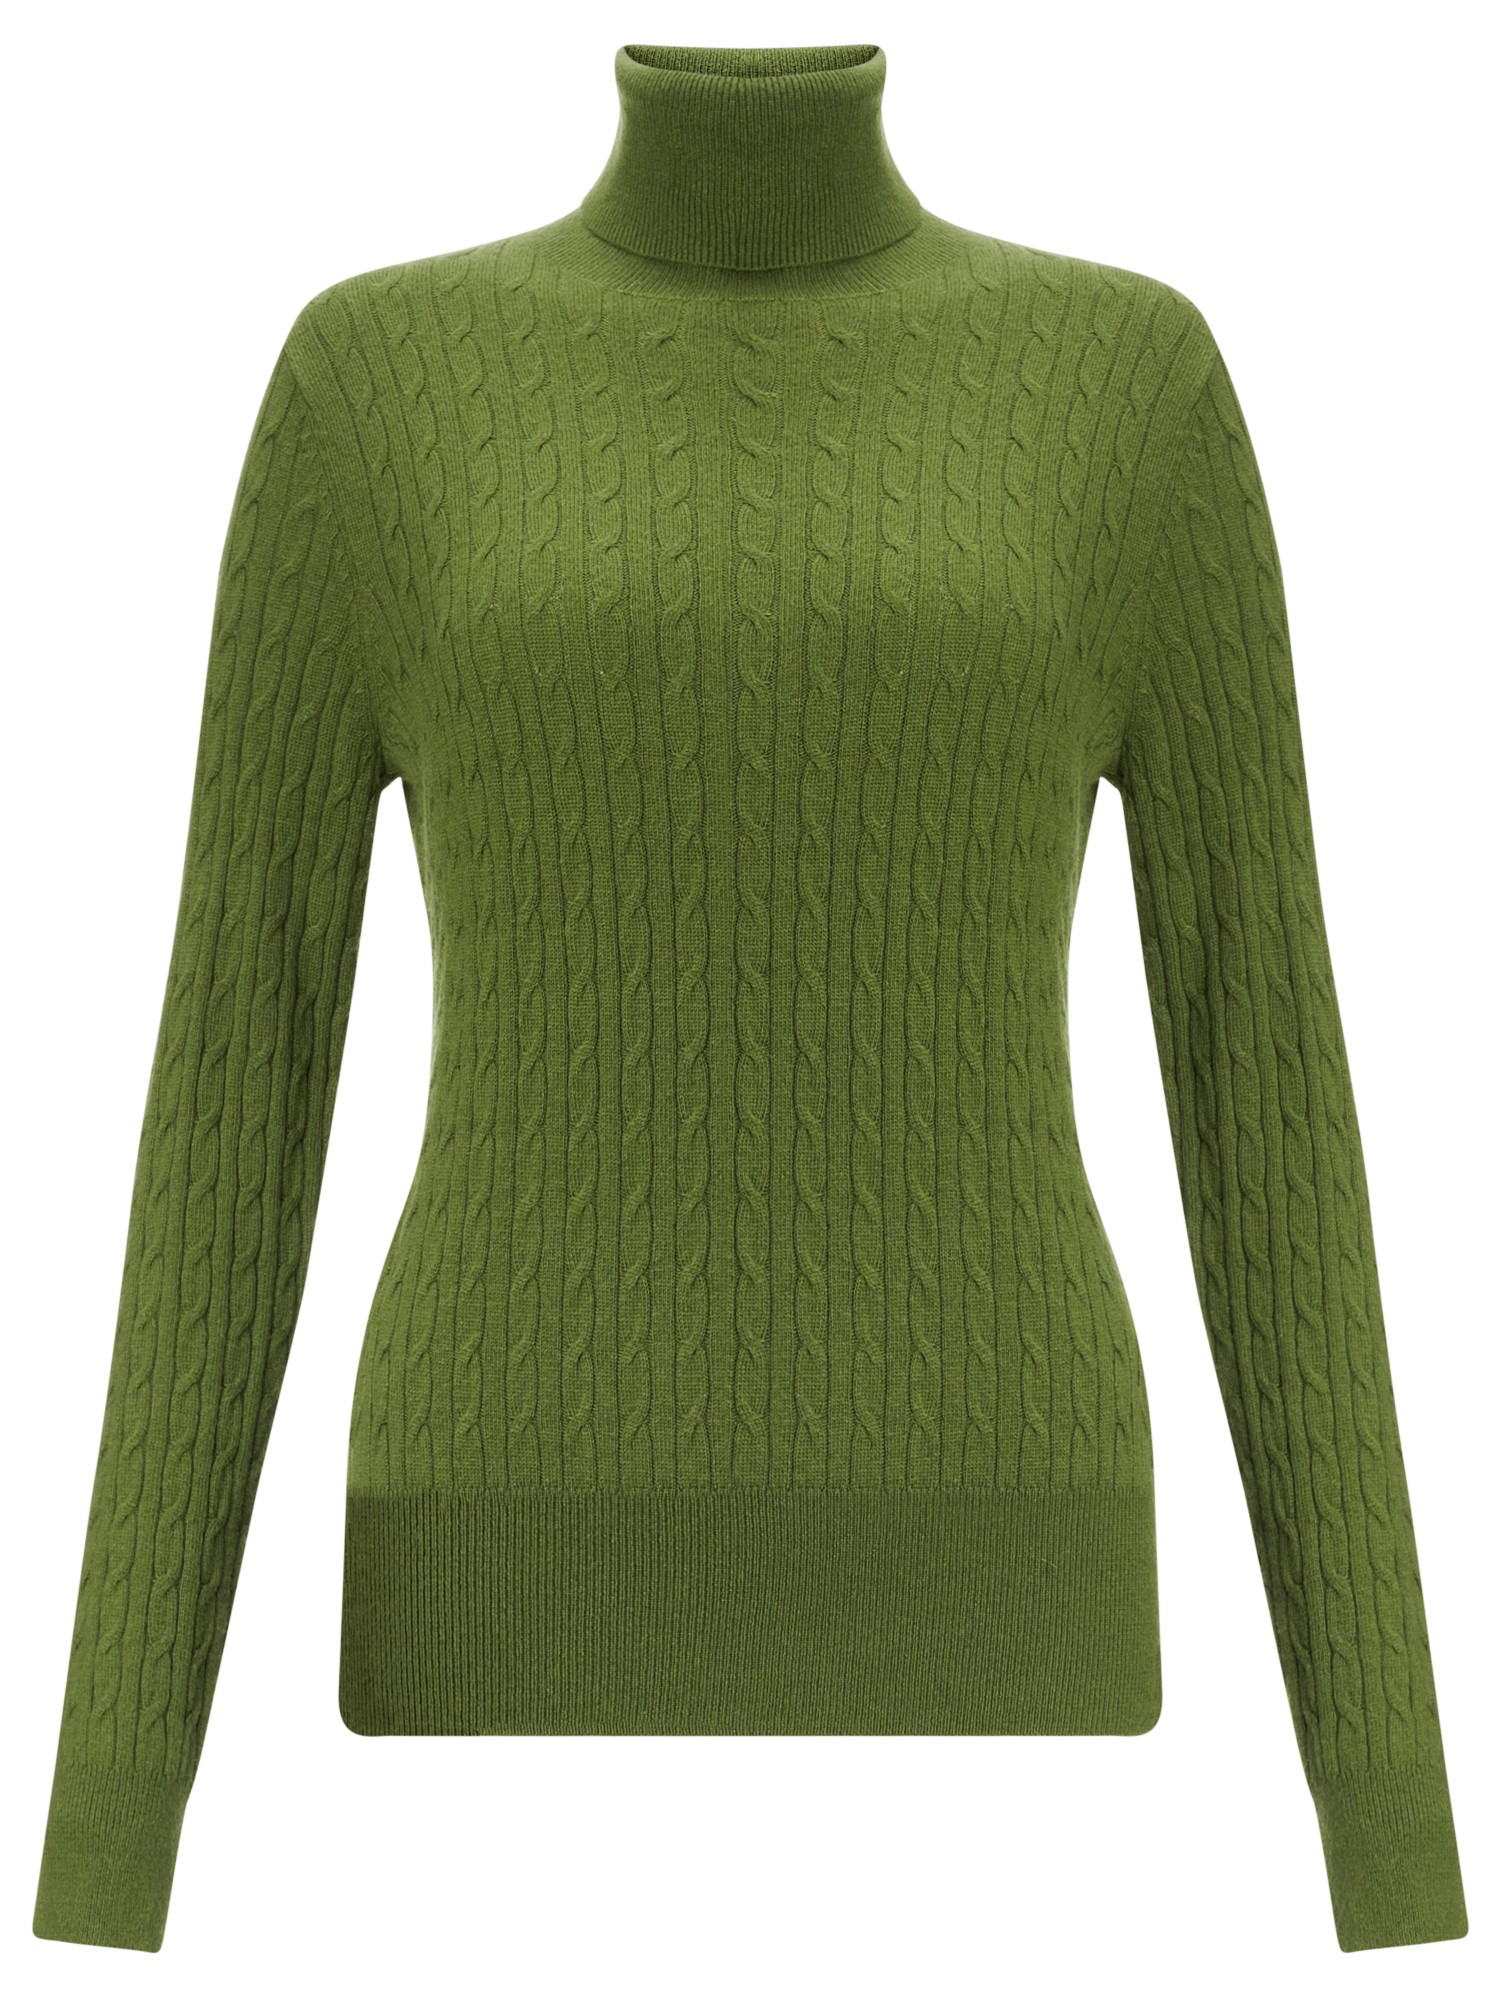 John Lewis Cable Roll Neck Sweater in Moss (Green)